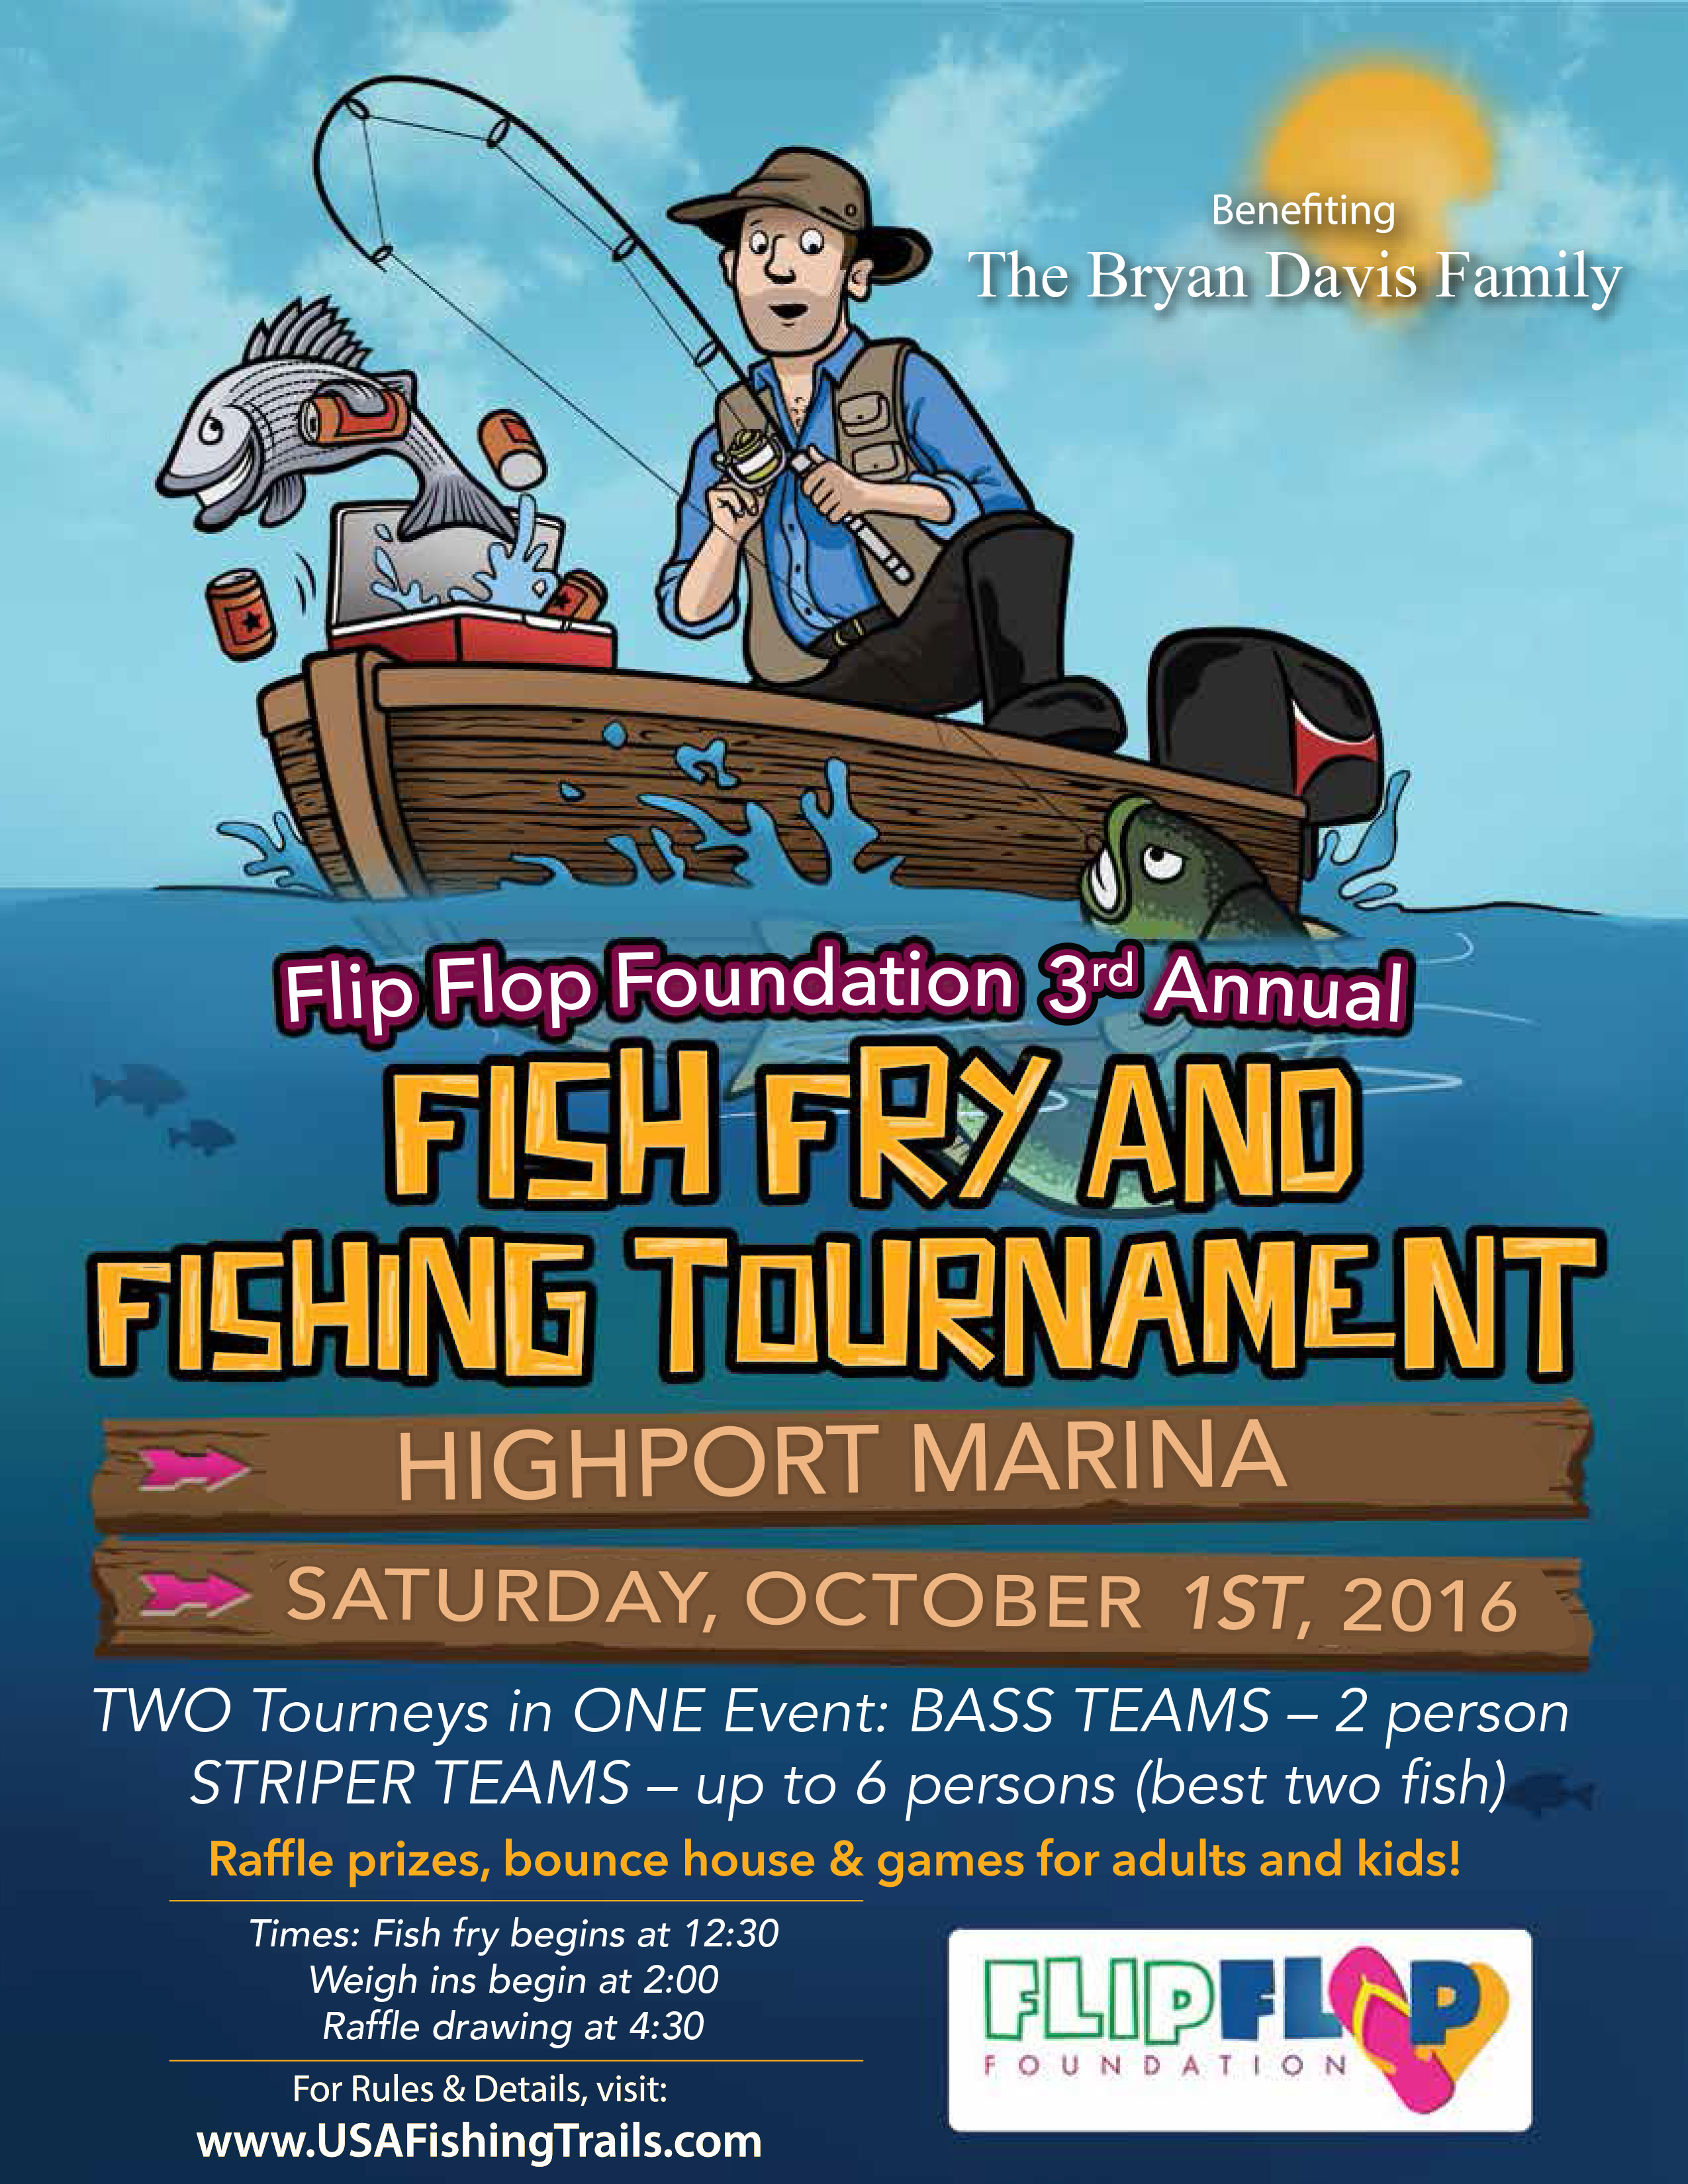 2016FishingTournament&FishFry_PROOF